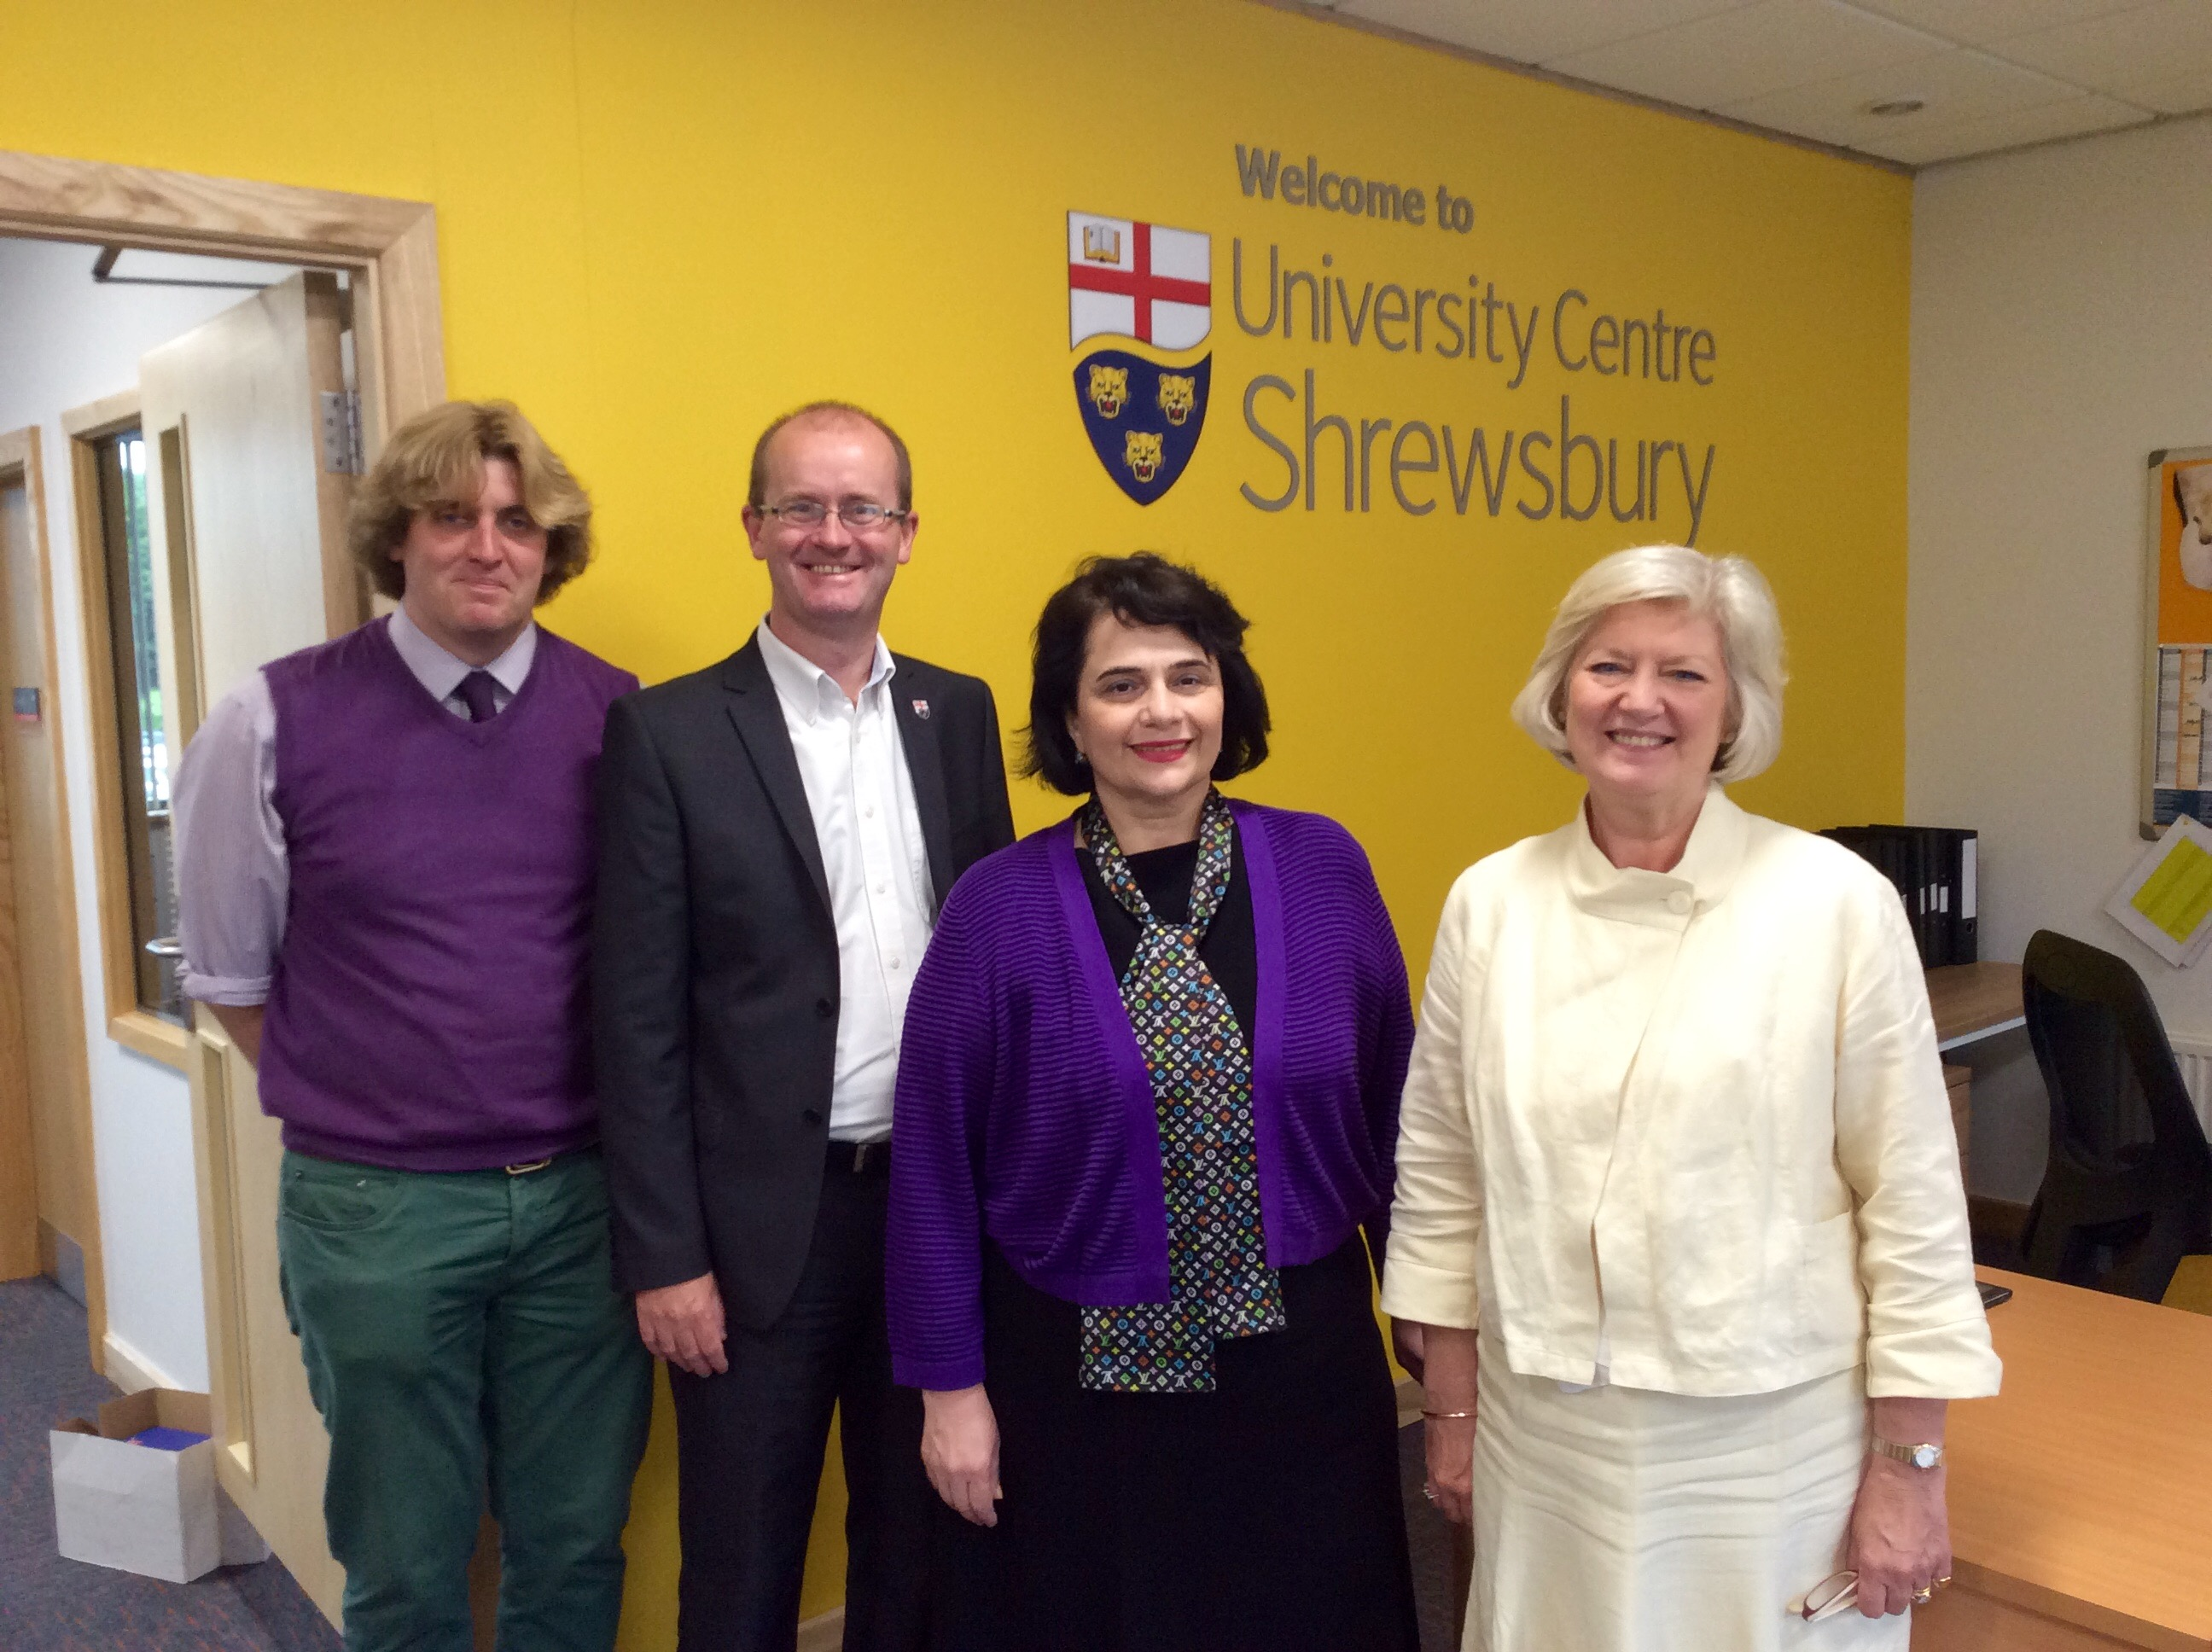 Left to right: Prof Tim Jenkins, UCS Programme Manager; Paul Kirkbright, UCS Deputy Provost; Prof Rima Beriashvili, TSMU Vice-Rector and Prof Anna Sutton, UCS Provost.